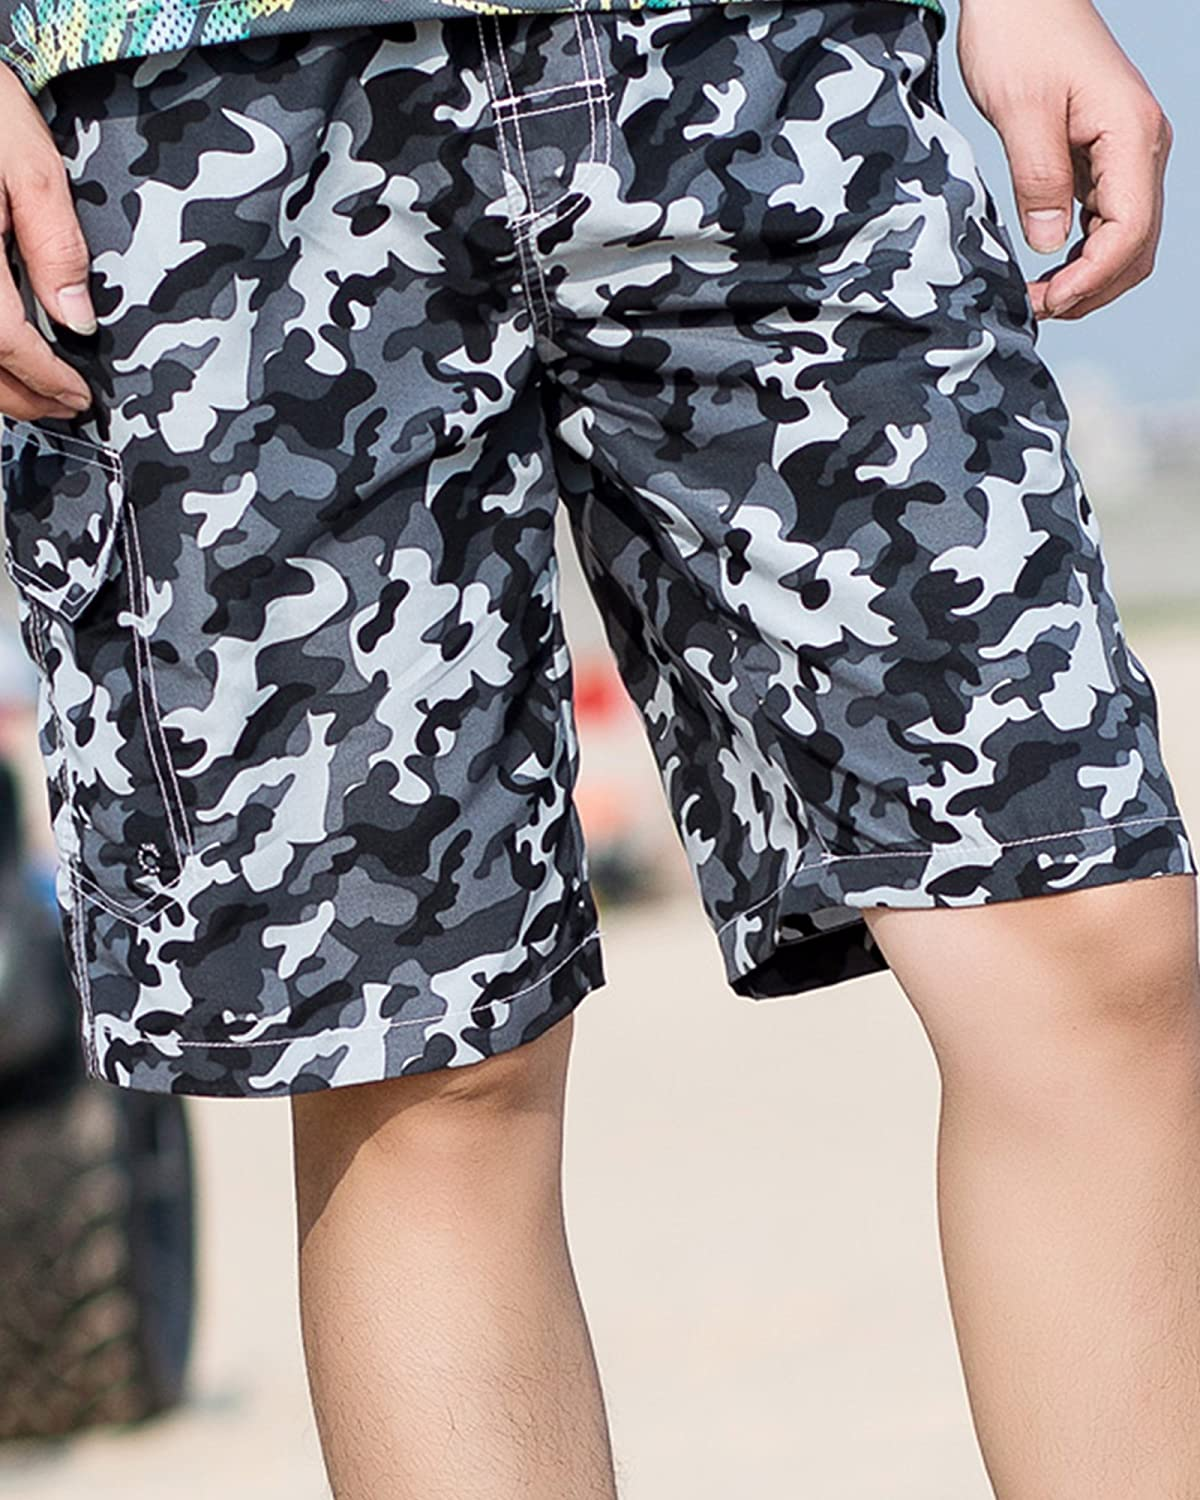 MACHLAB Mens Camouflage Printing Quick Dry Beach Board Shorts Swim Trunks